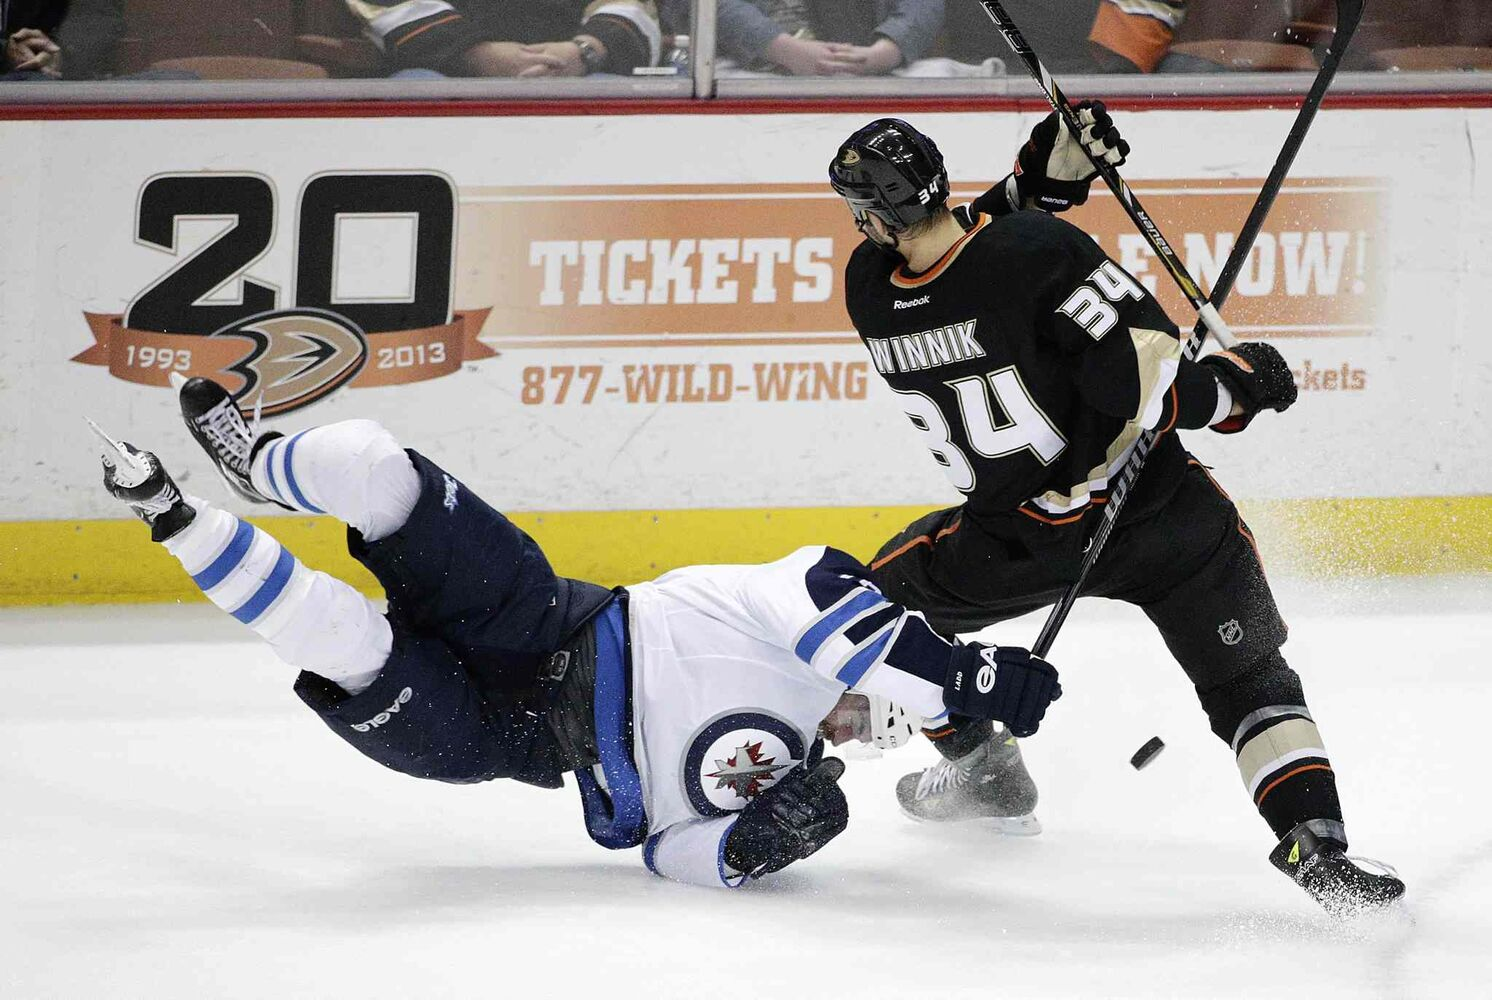 Winnipeg Jets' Andrew Ladd, left, falls to the ice while fighting for the puck with Anaheim Ducks' Daniel Winnik during first period. (Jae C. Hong / The Associated Press)